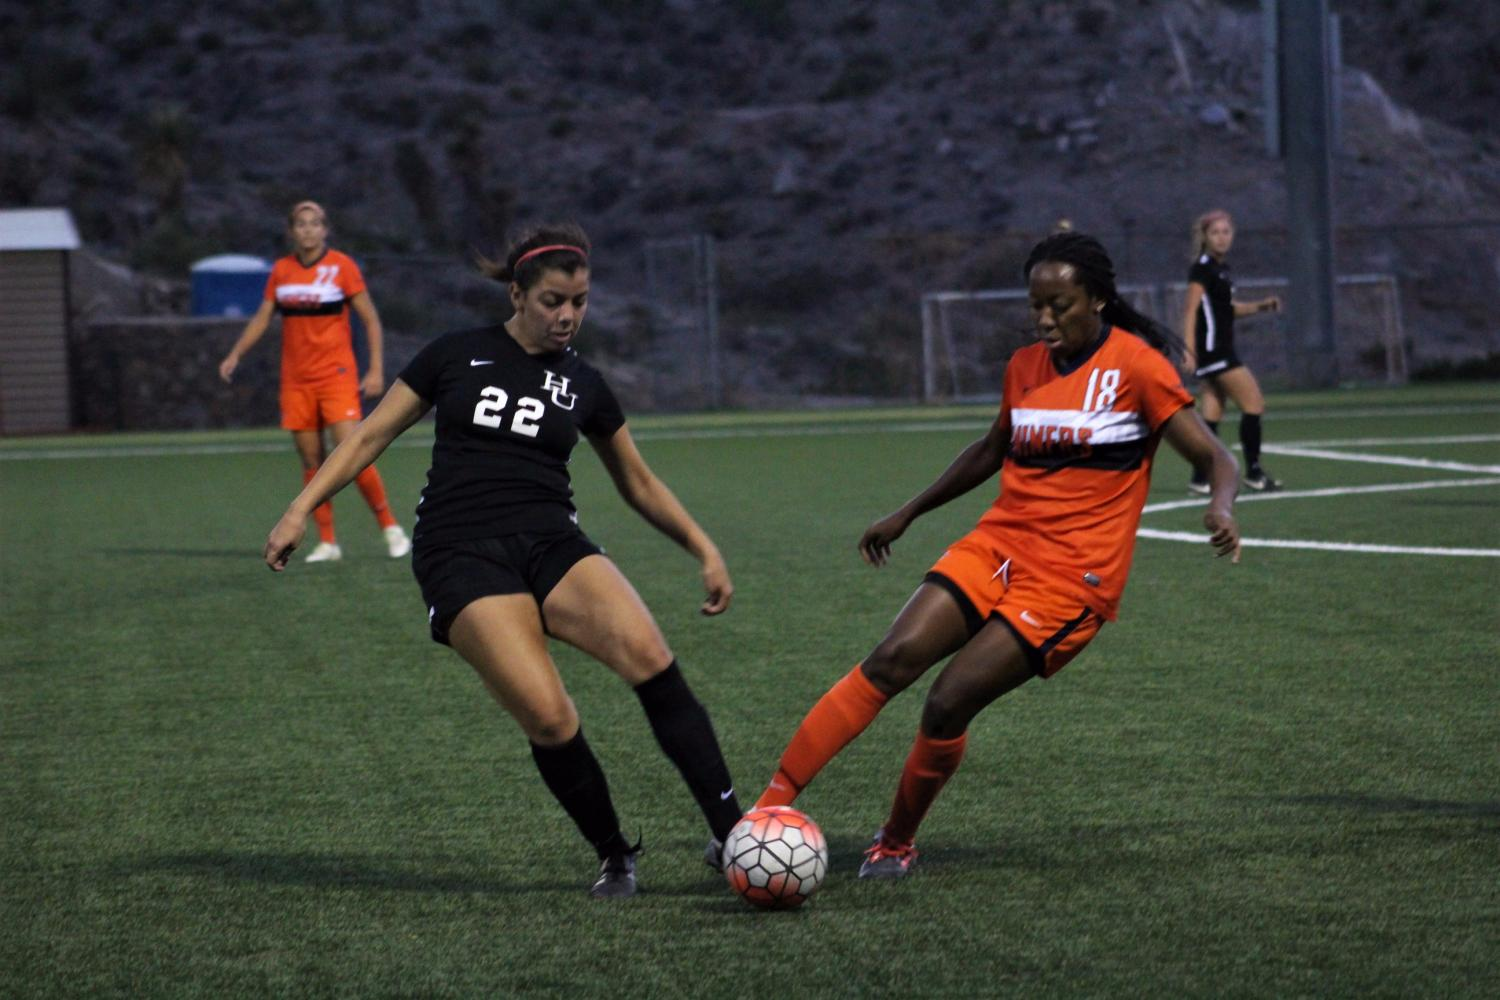 Miners blowout New Mexico Highlands 8-0